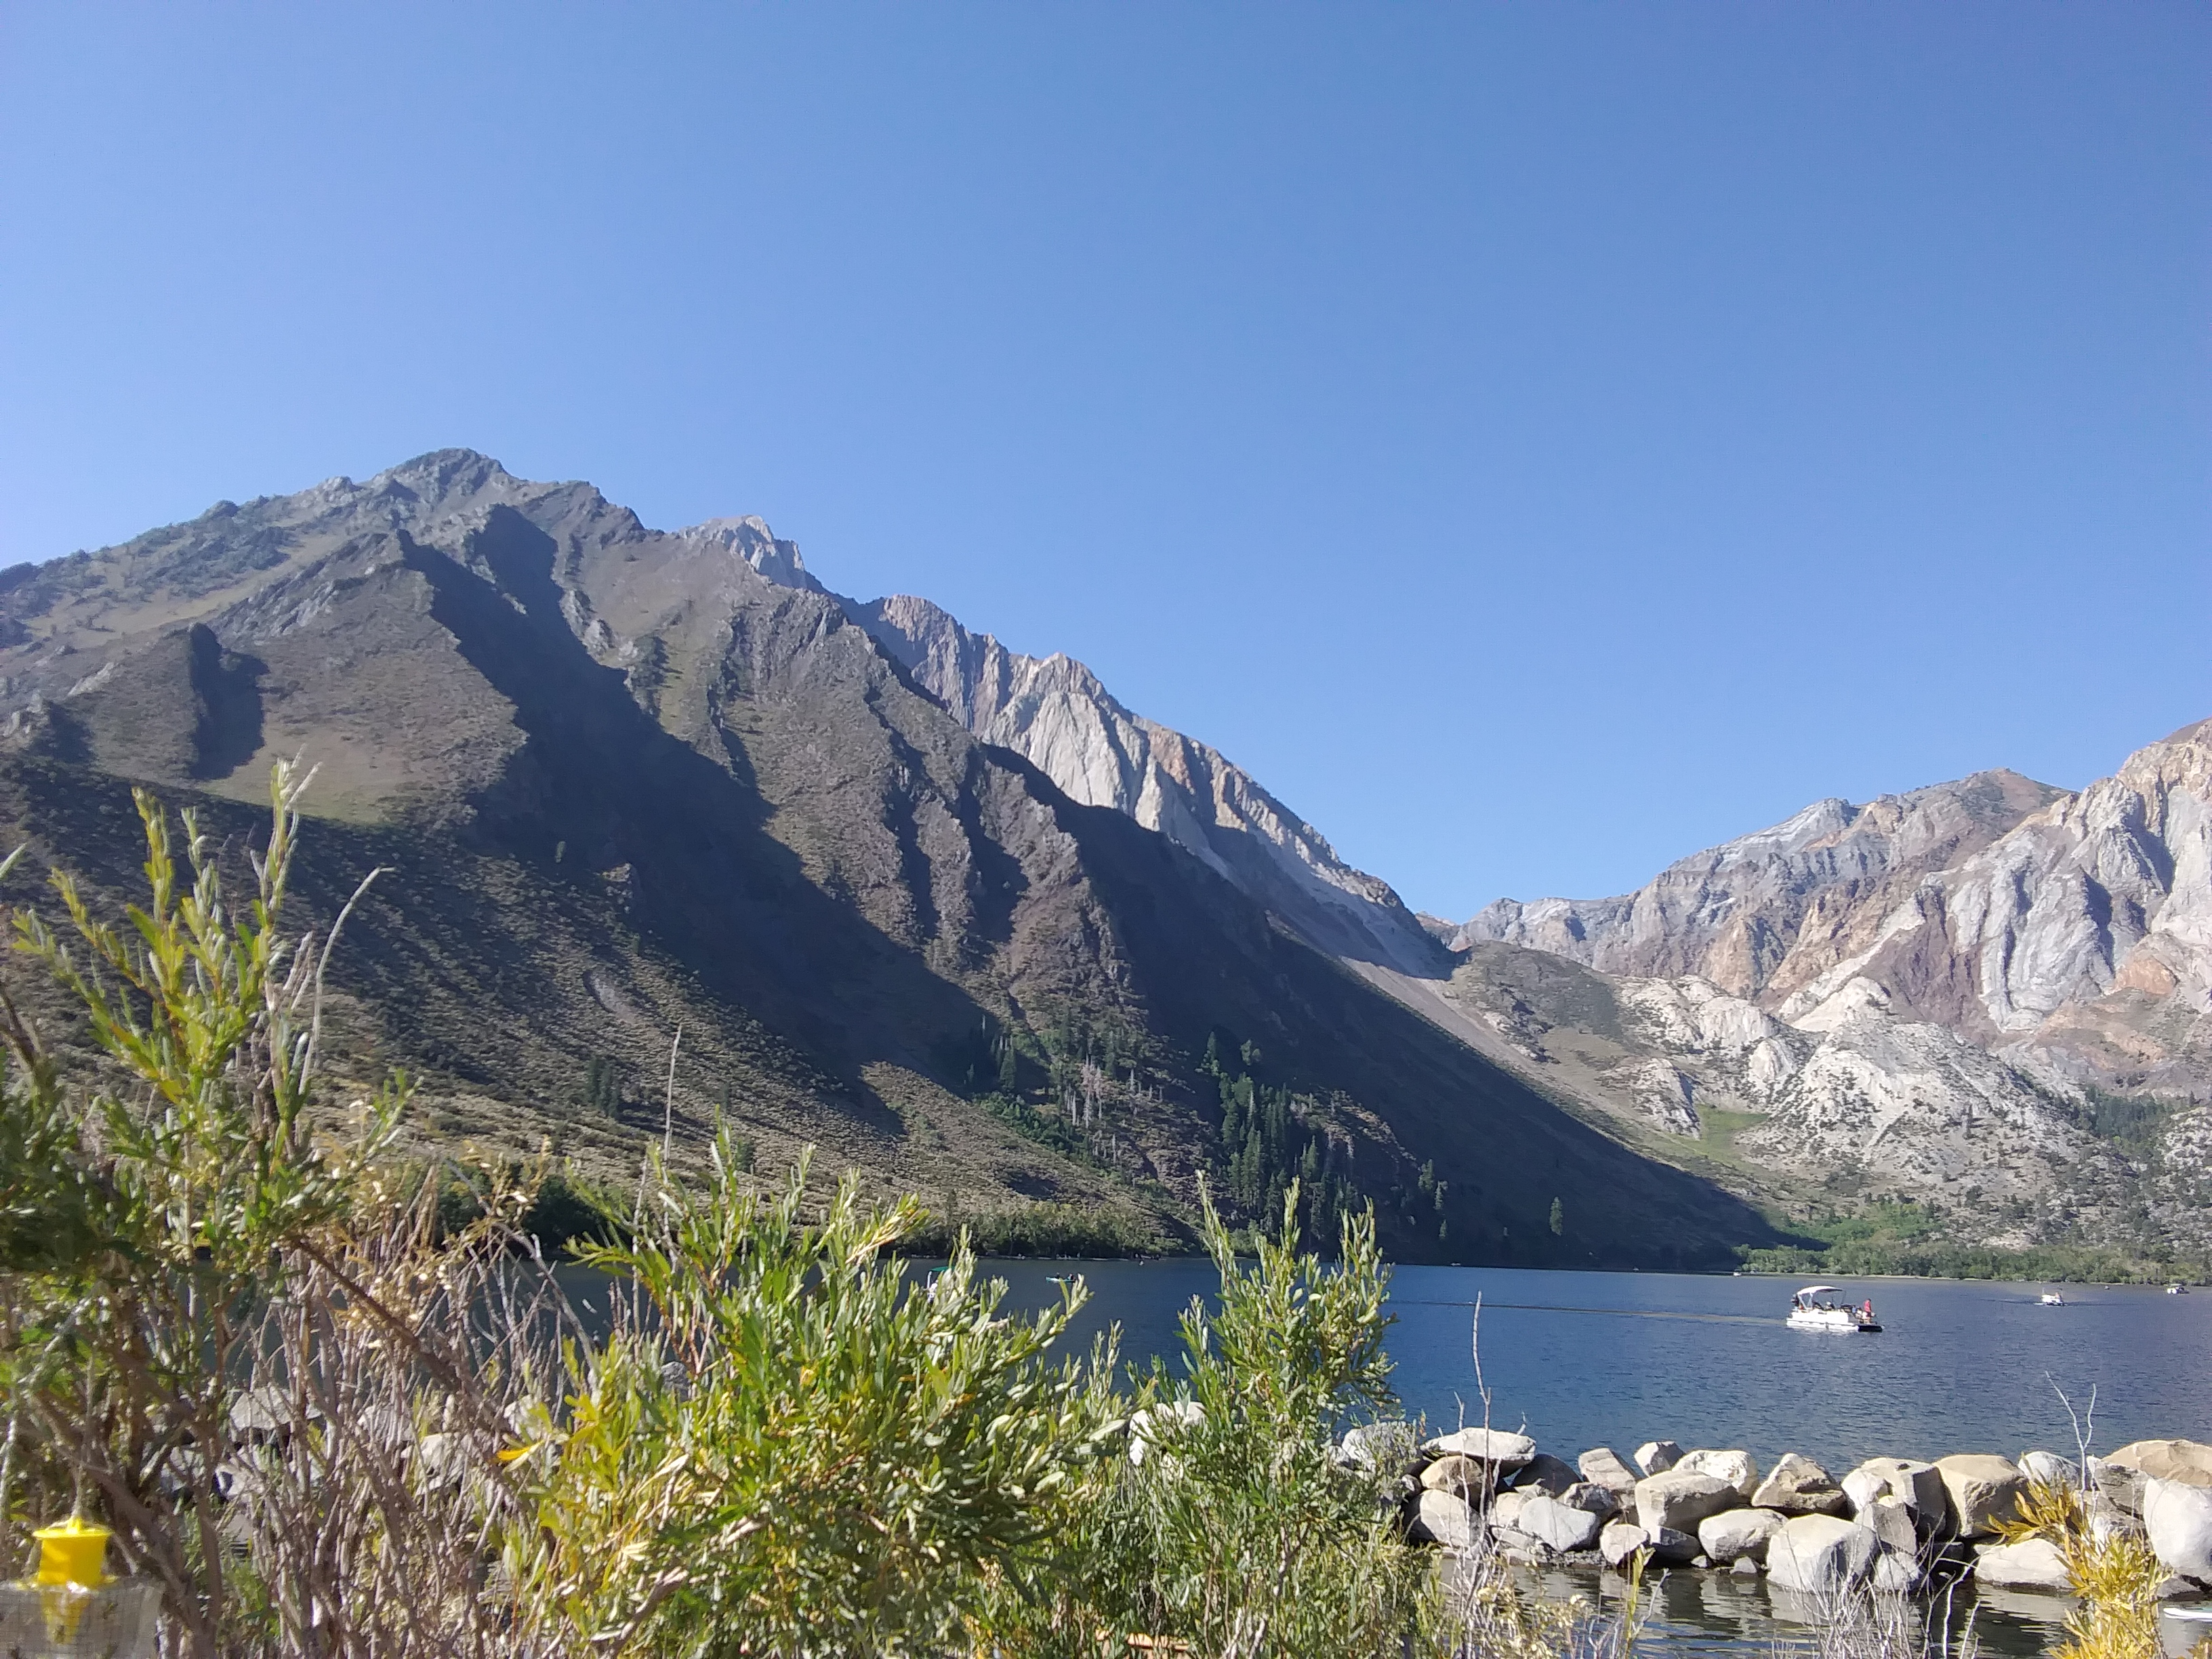 Kayaking on Convict Lake